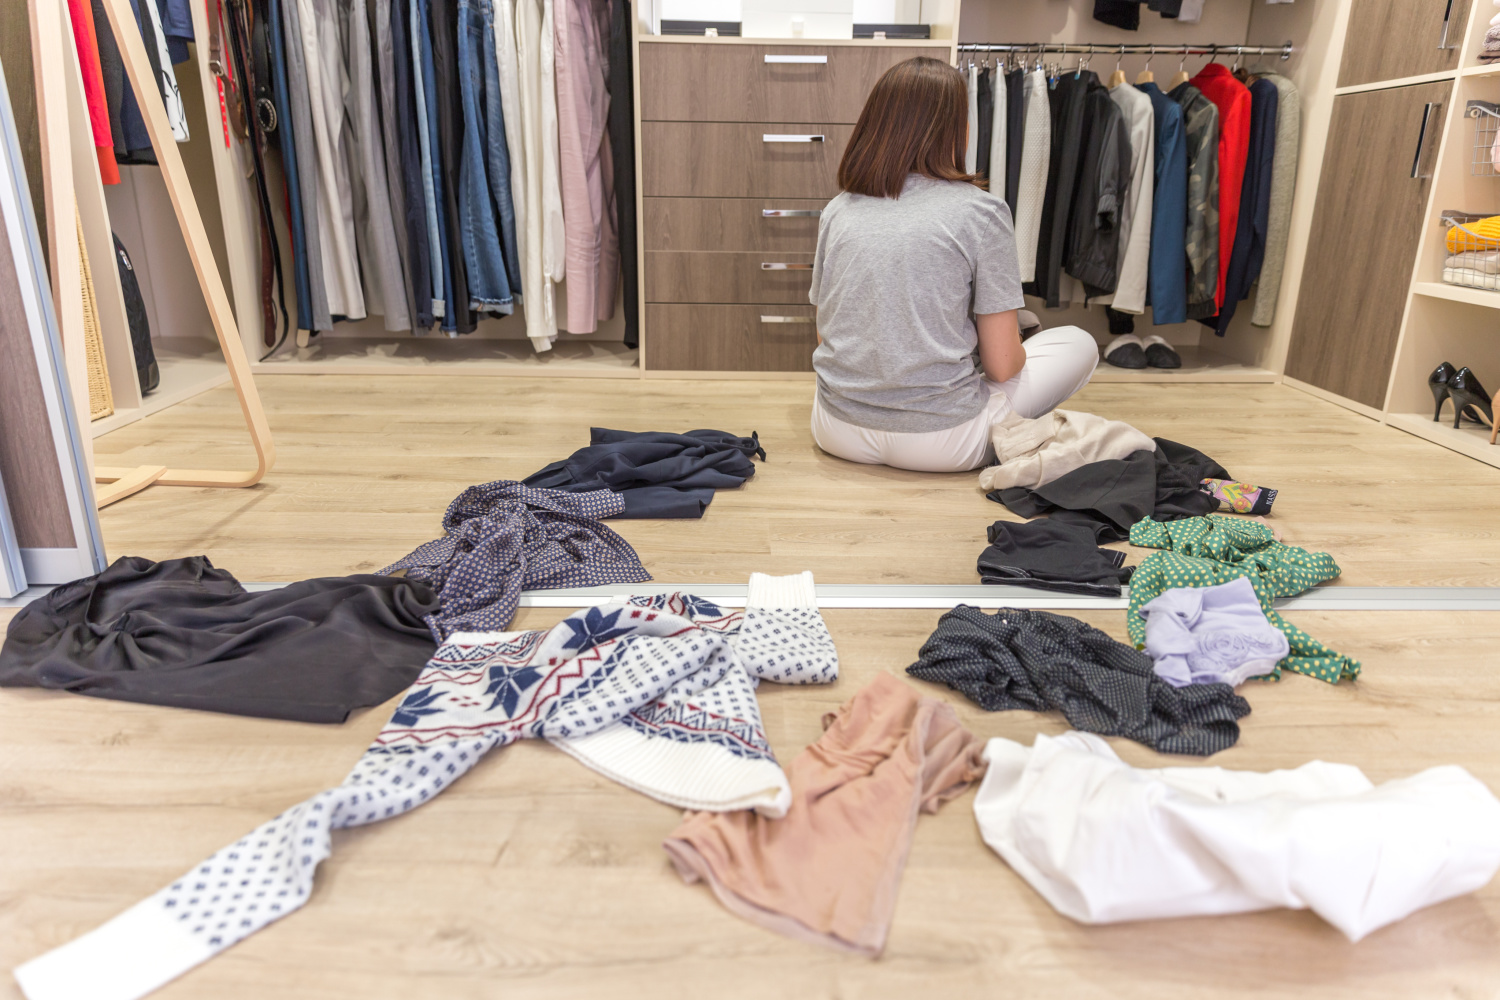 Messy closet. Simple rules for cleaning out a closet